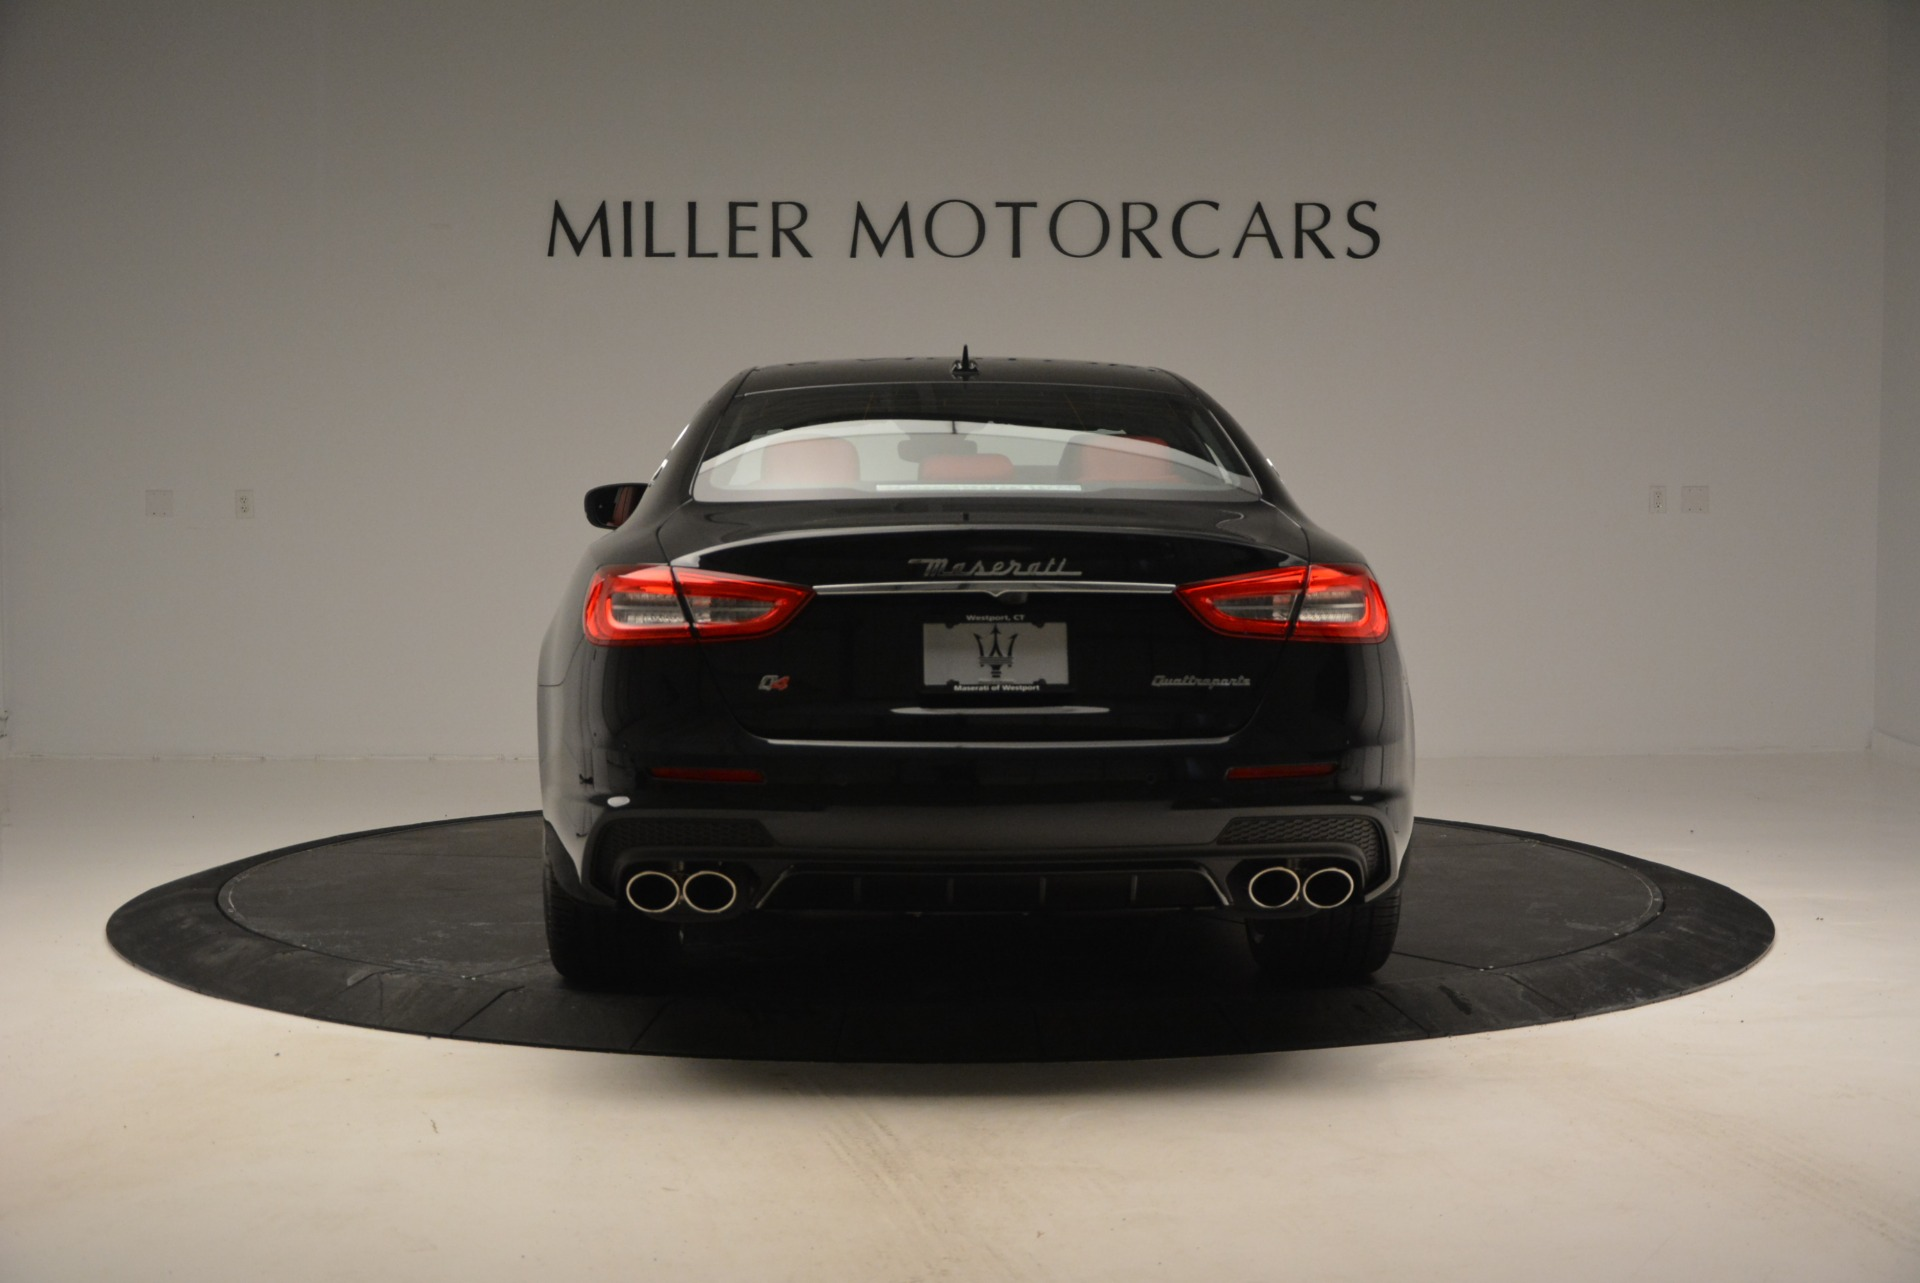 New 2017 Maserati Quattroporte S Q4 GranSport For Sale In Westport, CT 790_p6